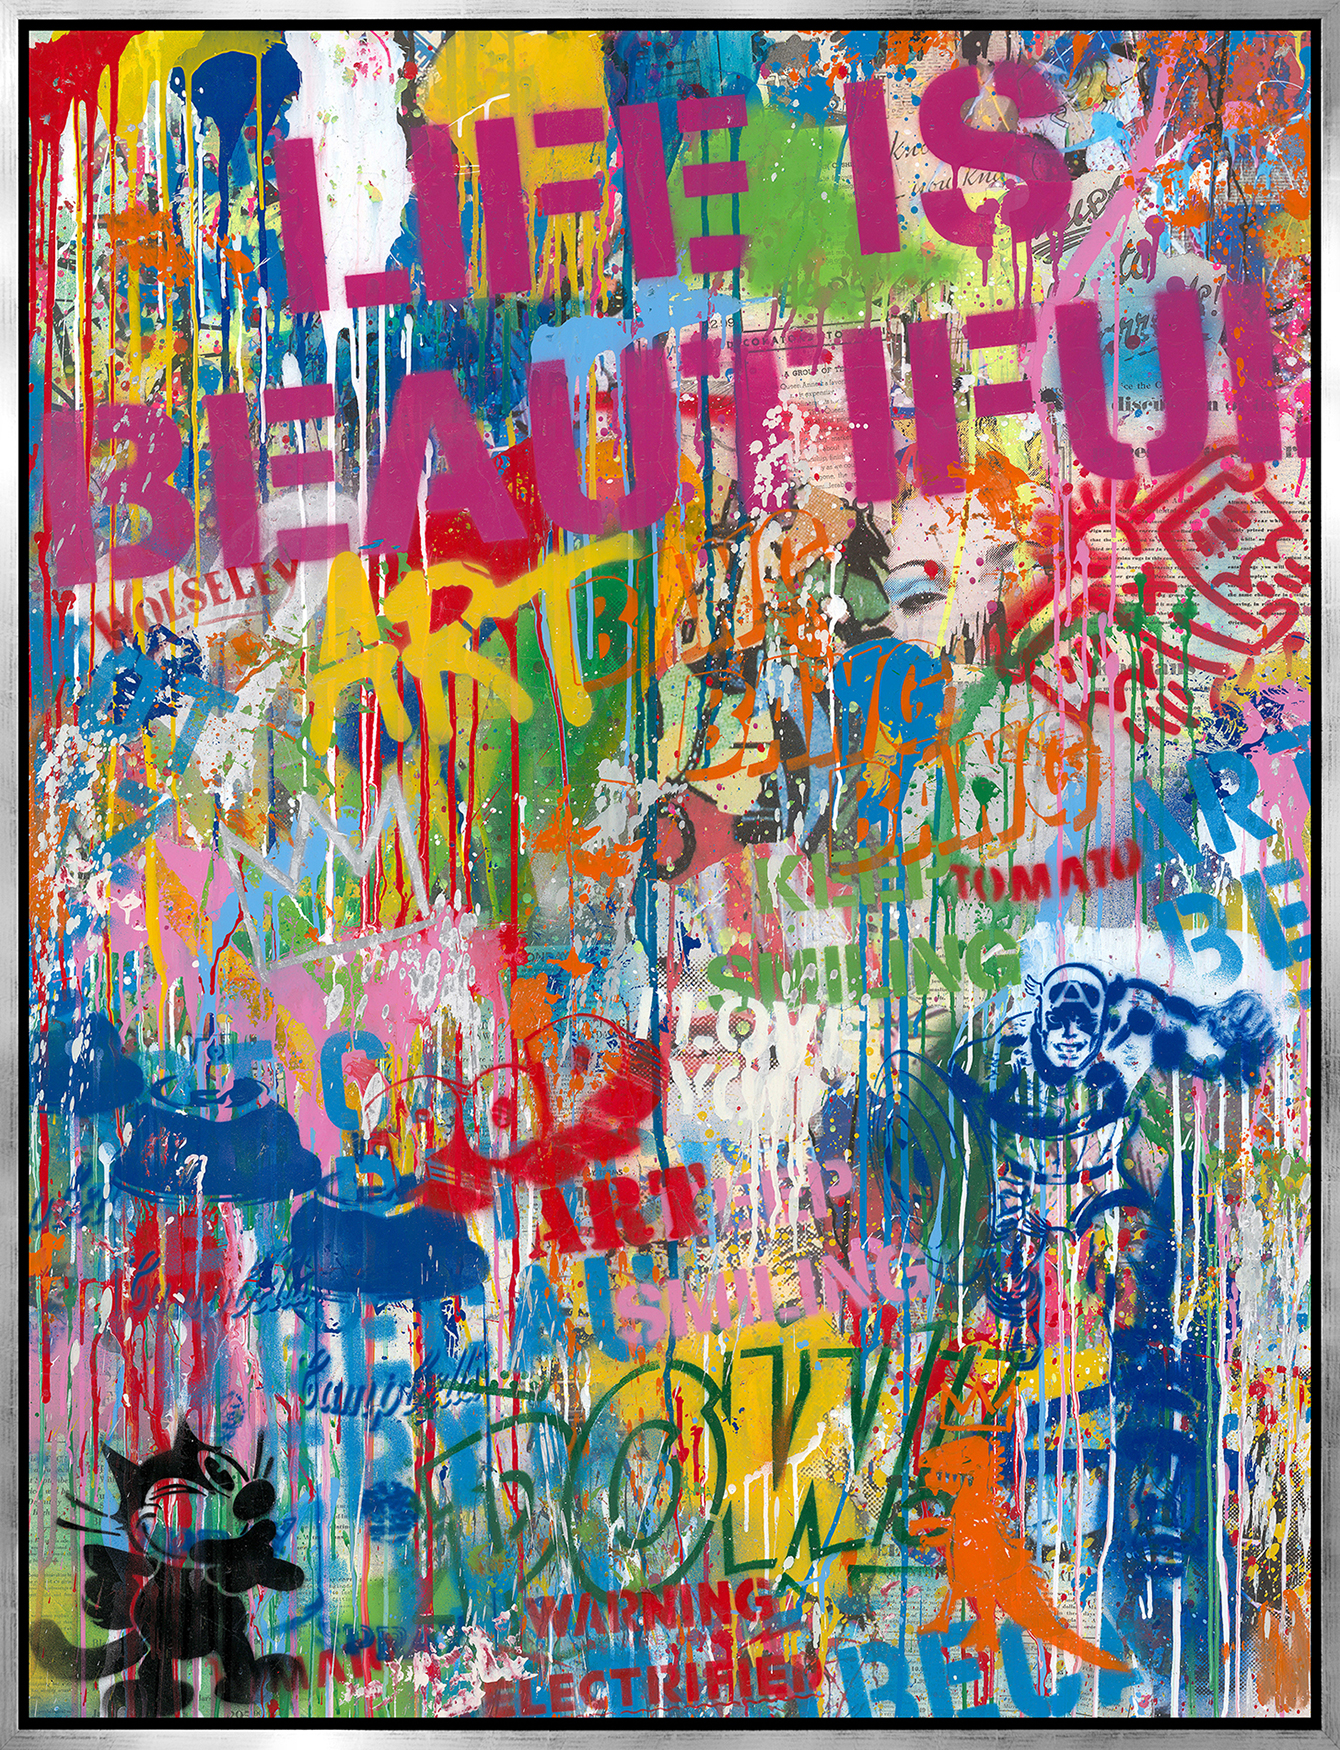 Mr. Brainwash - Street Wall , 9003-012-105